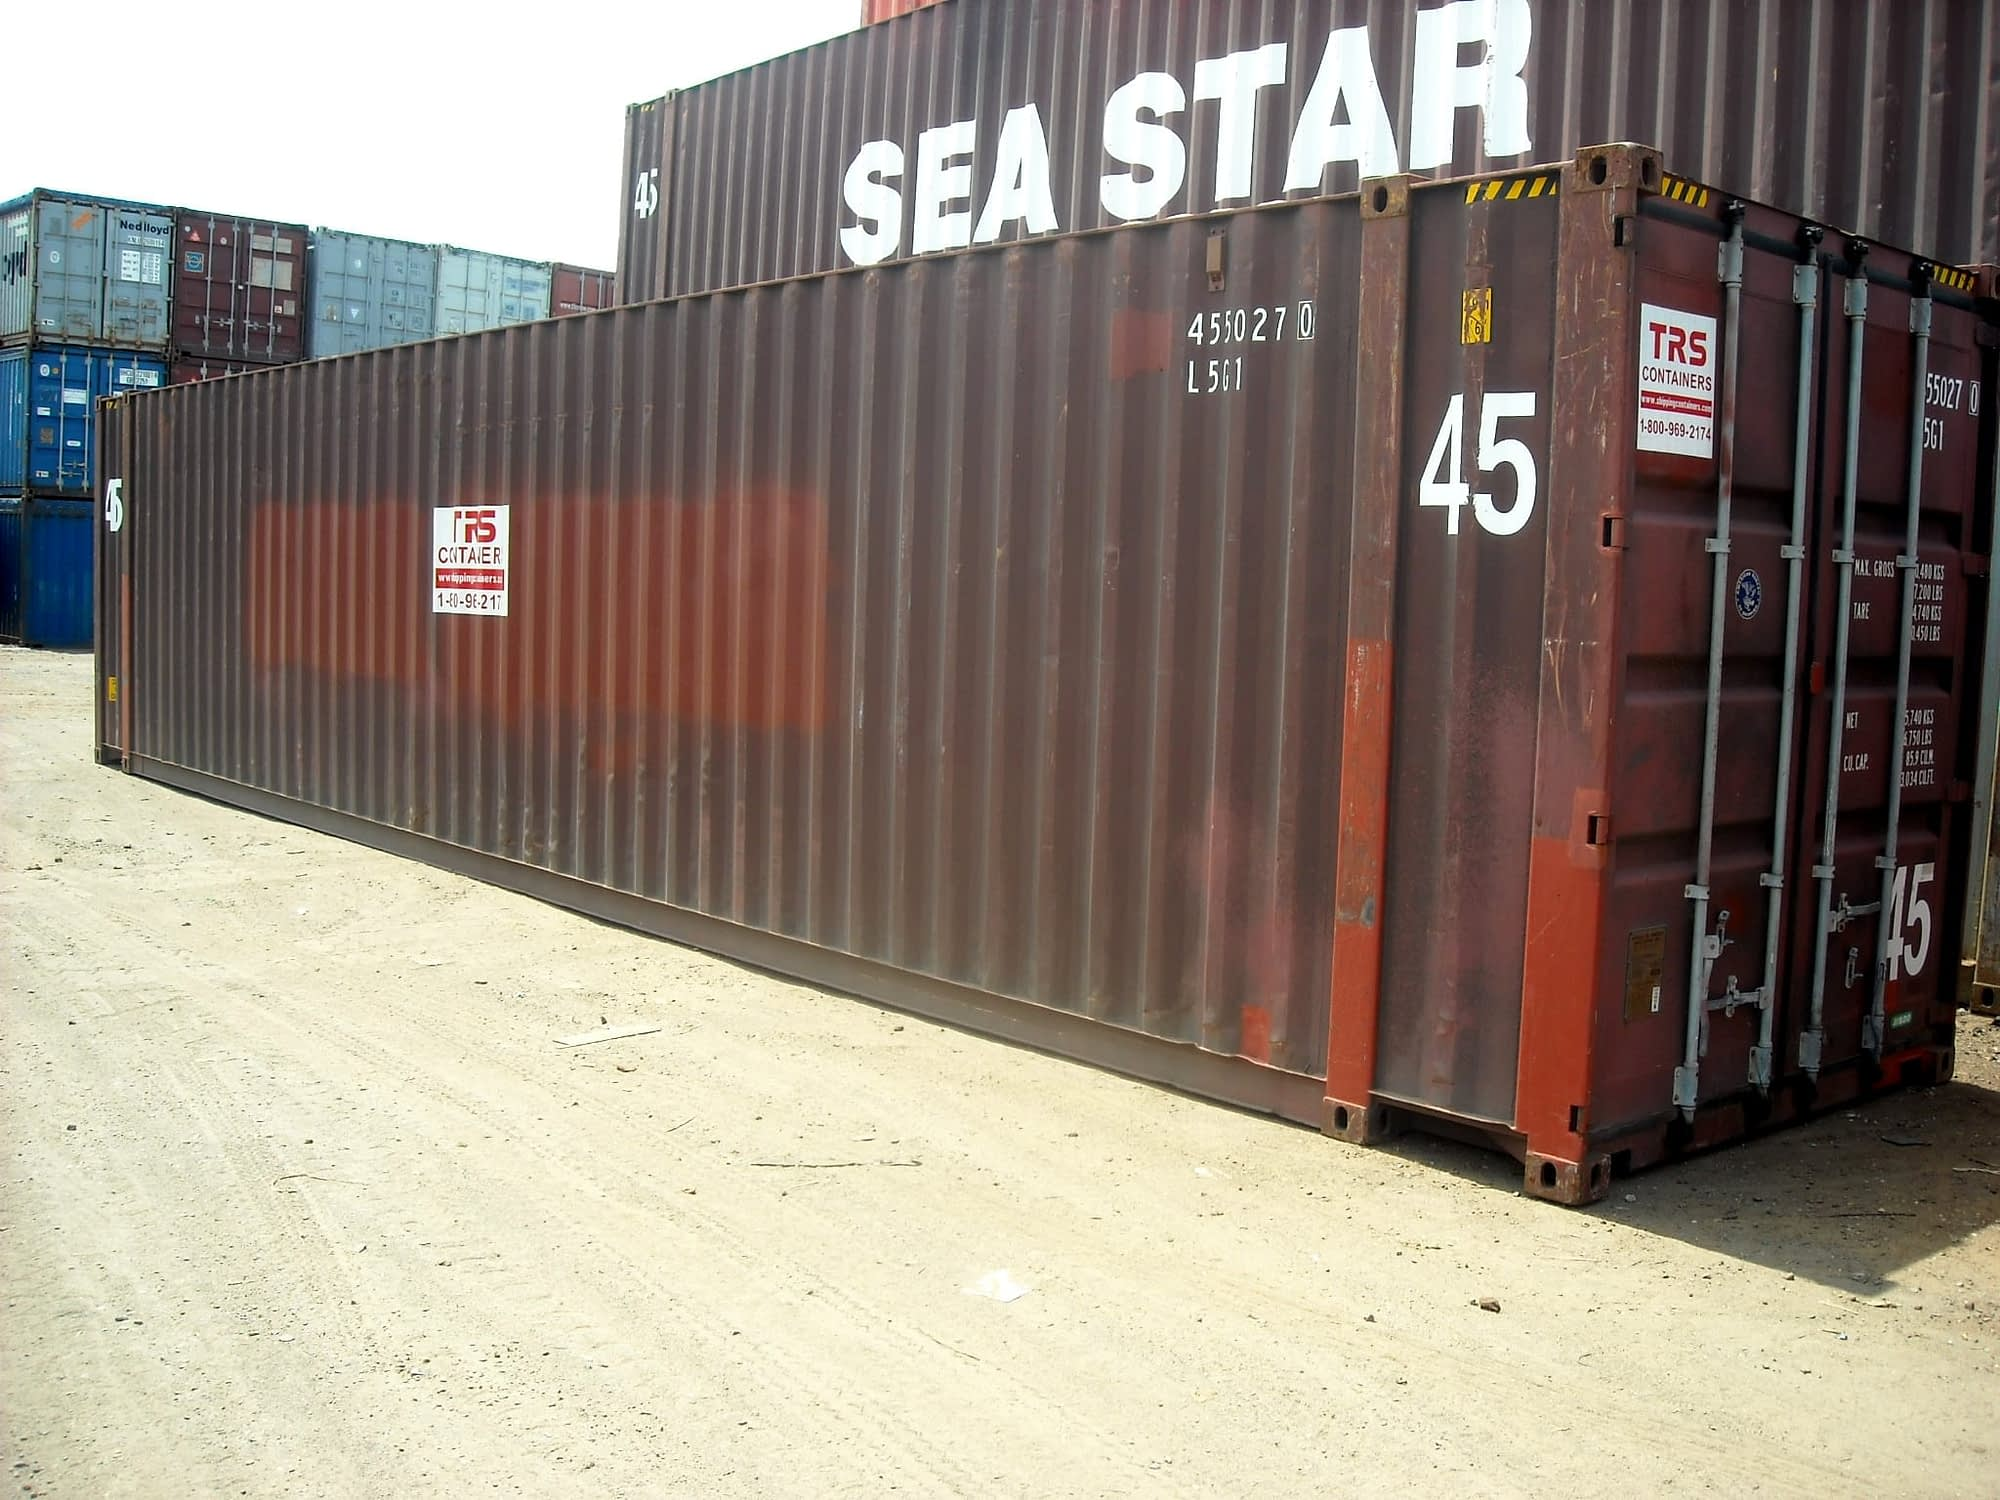 TRS Containers sells steel intermodal containers in 45 foot lengths